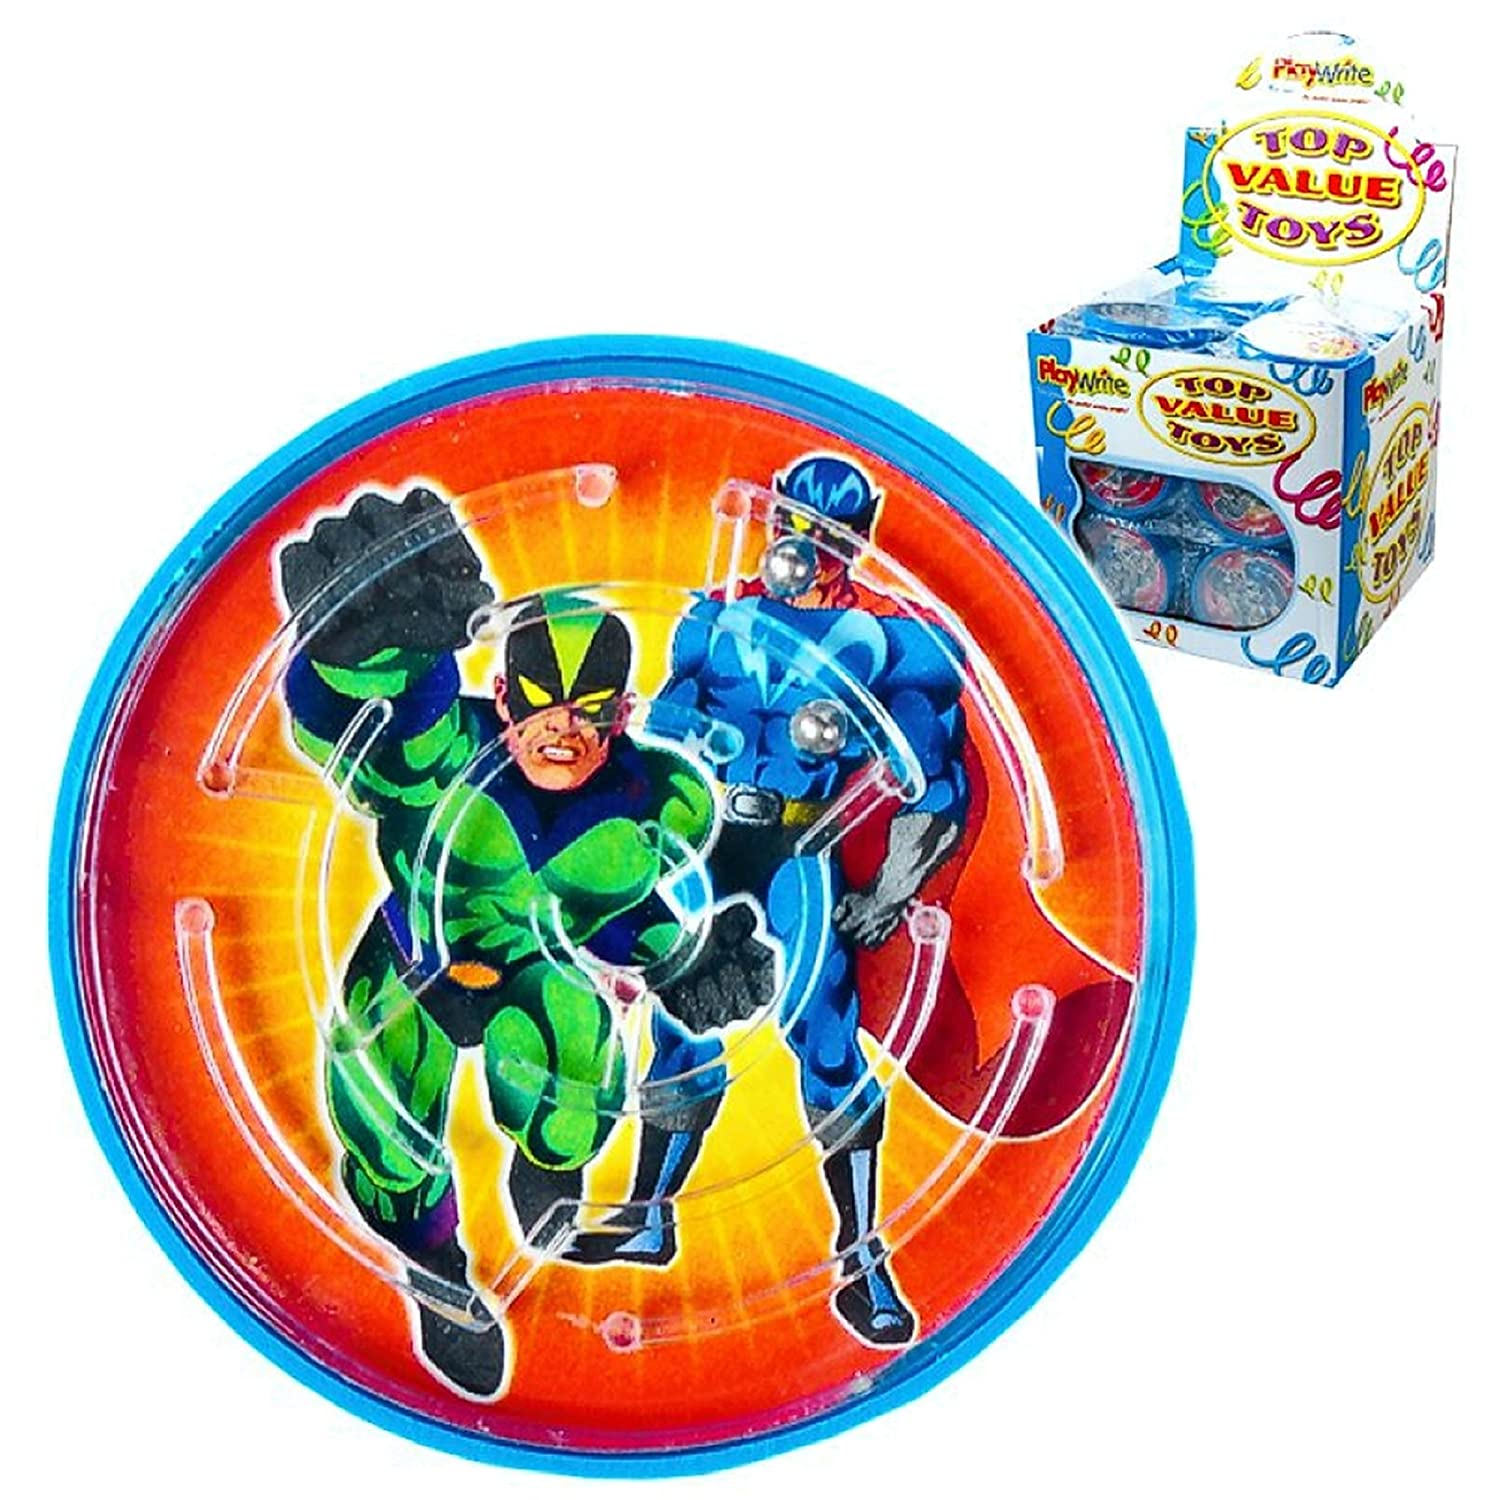 10 x Childrens Kids Superhero Themed Ball Maze Puzzle Birthday Party Bag Fillers Boys Playwrite